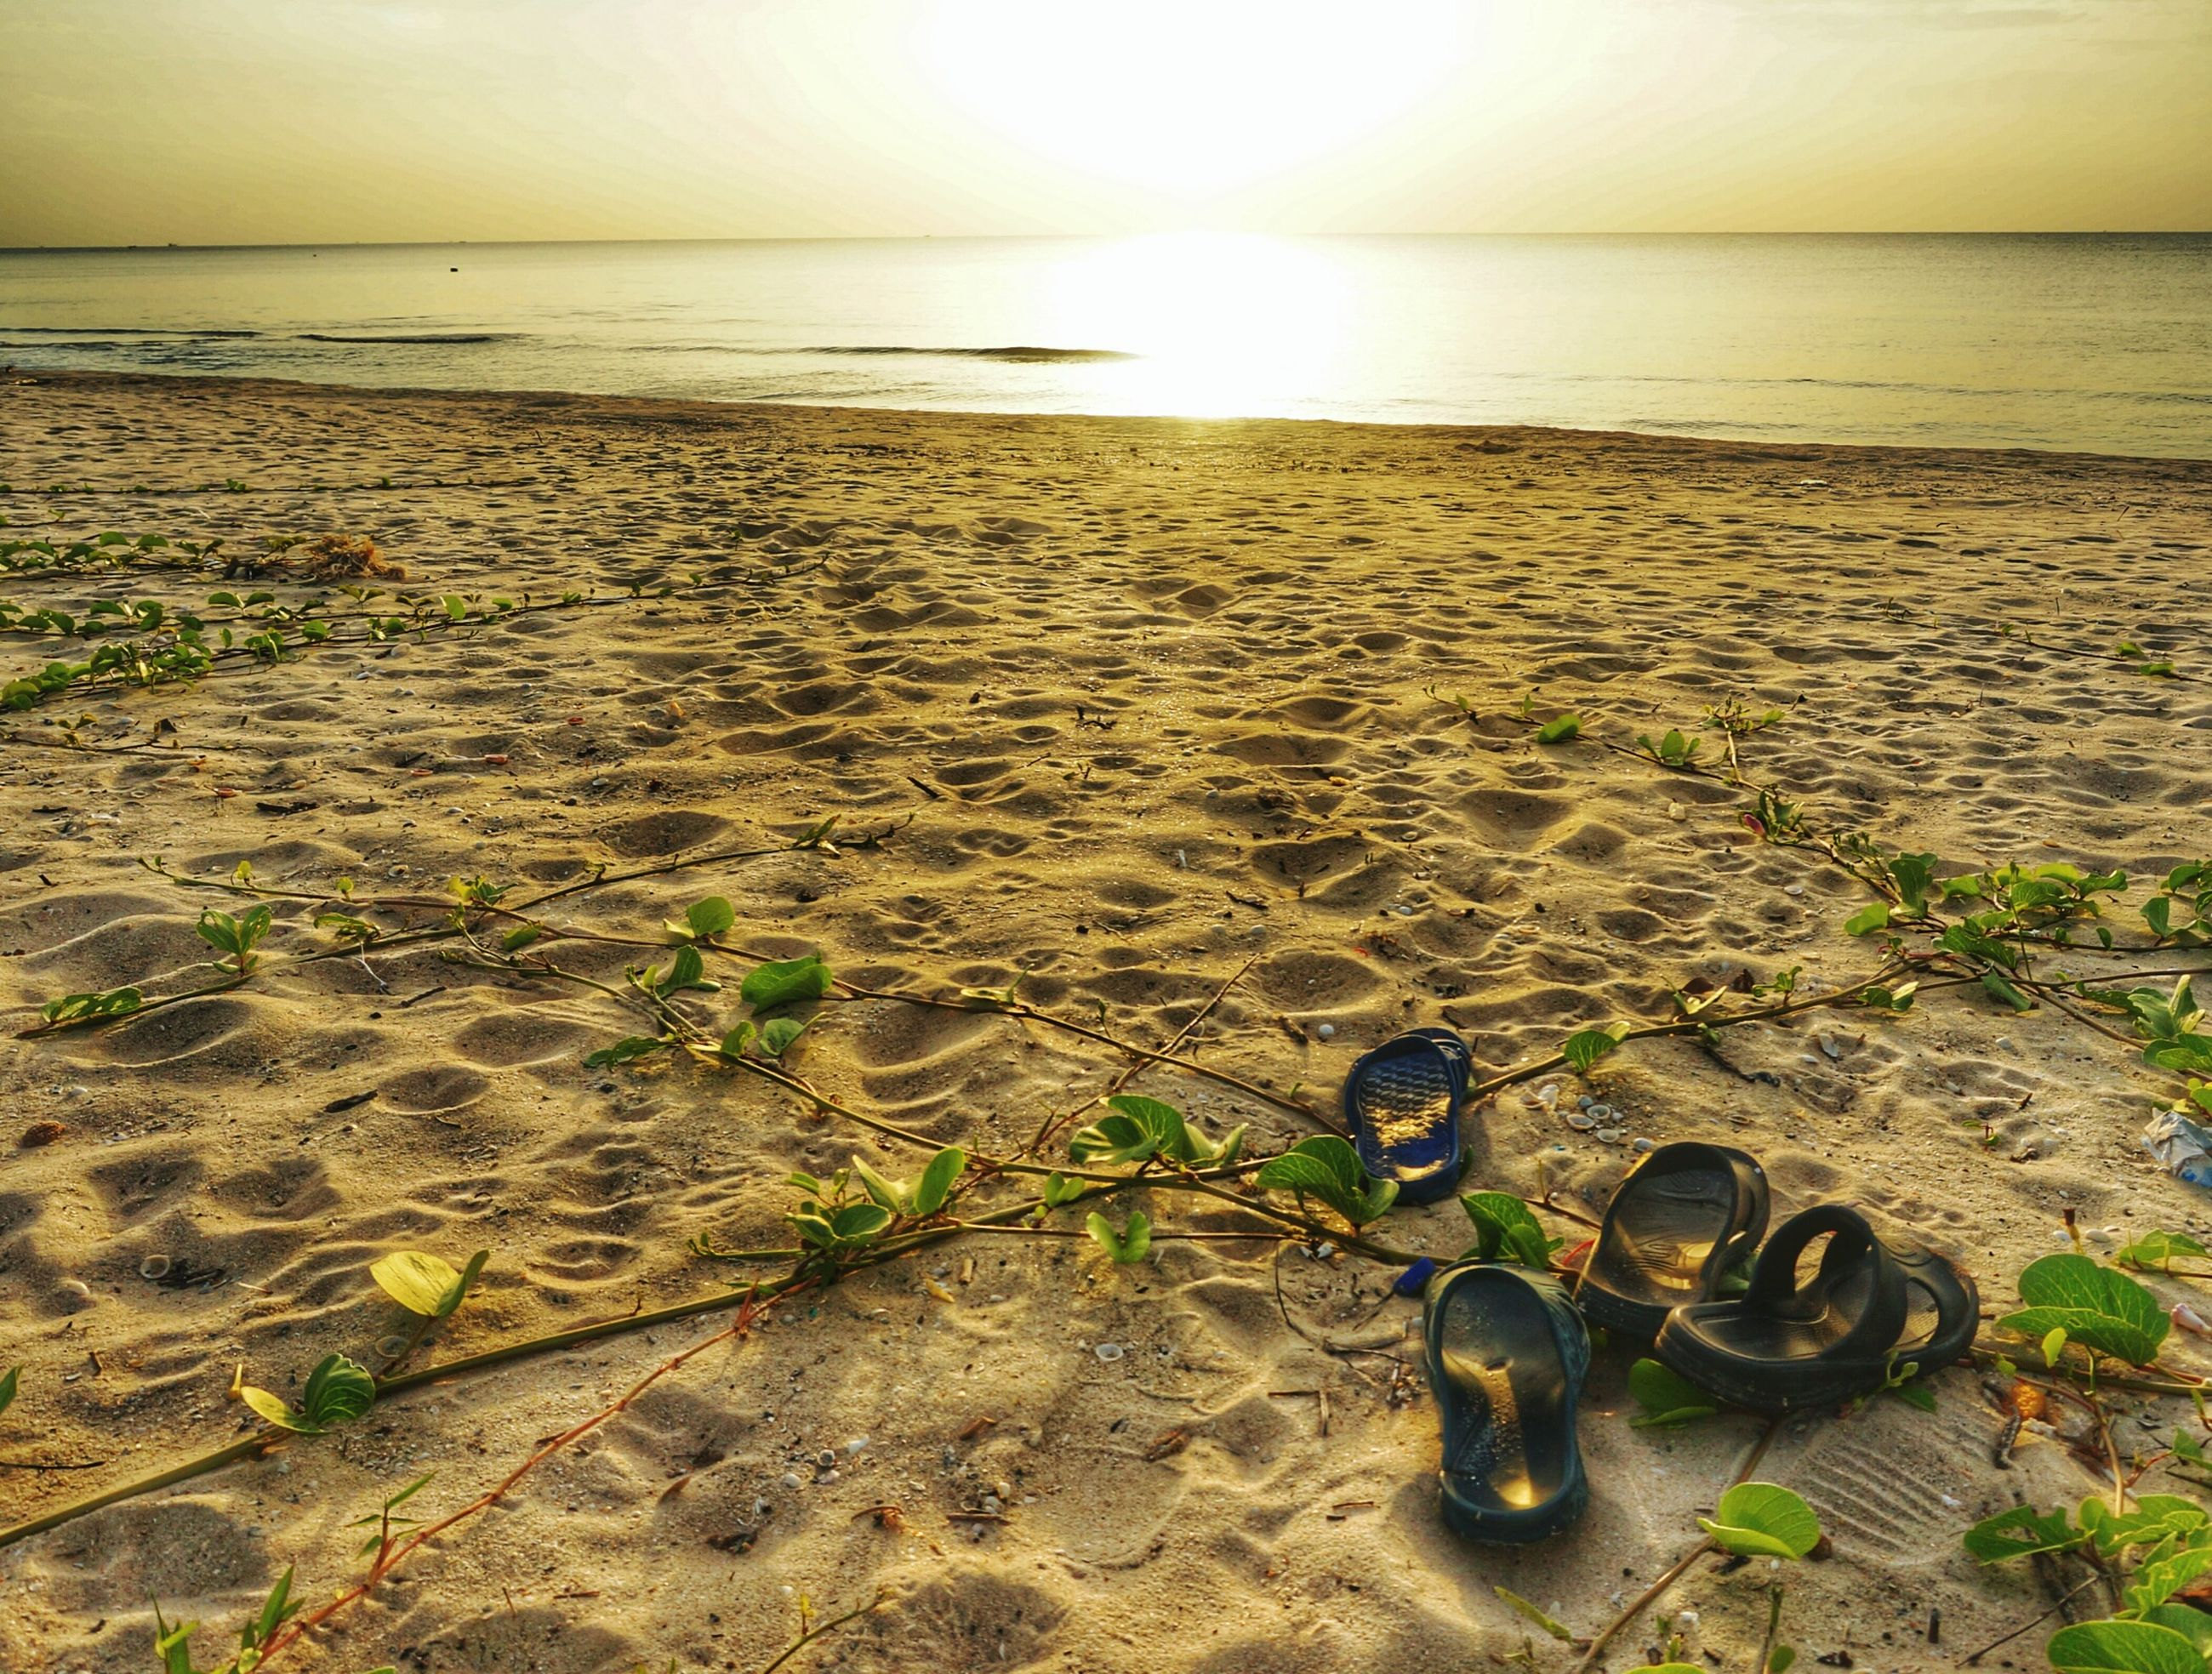 sea, horizon over water, beach, water, shore, tranquility, tranquil scene, scenics, sun, sand, sunset, sky, beauty in nature, sunlight, nature, idyllic, reflection, wave, remote, outdoors